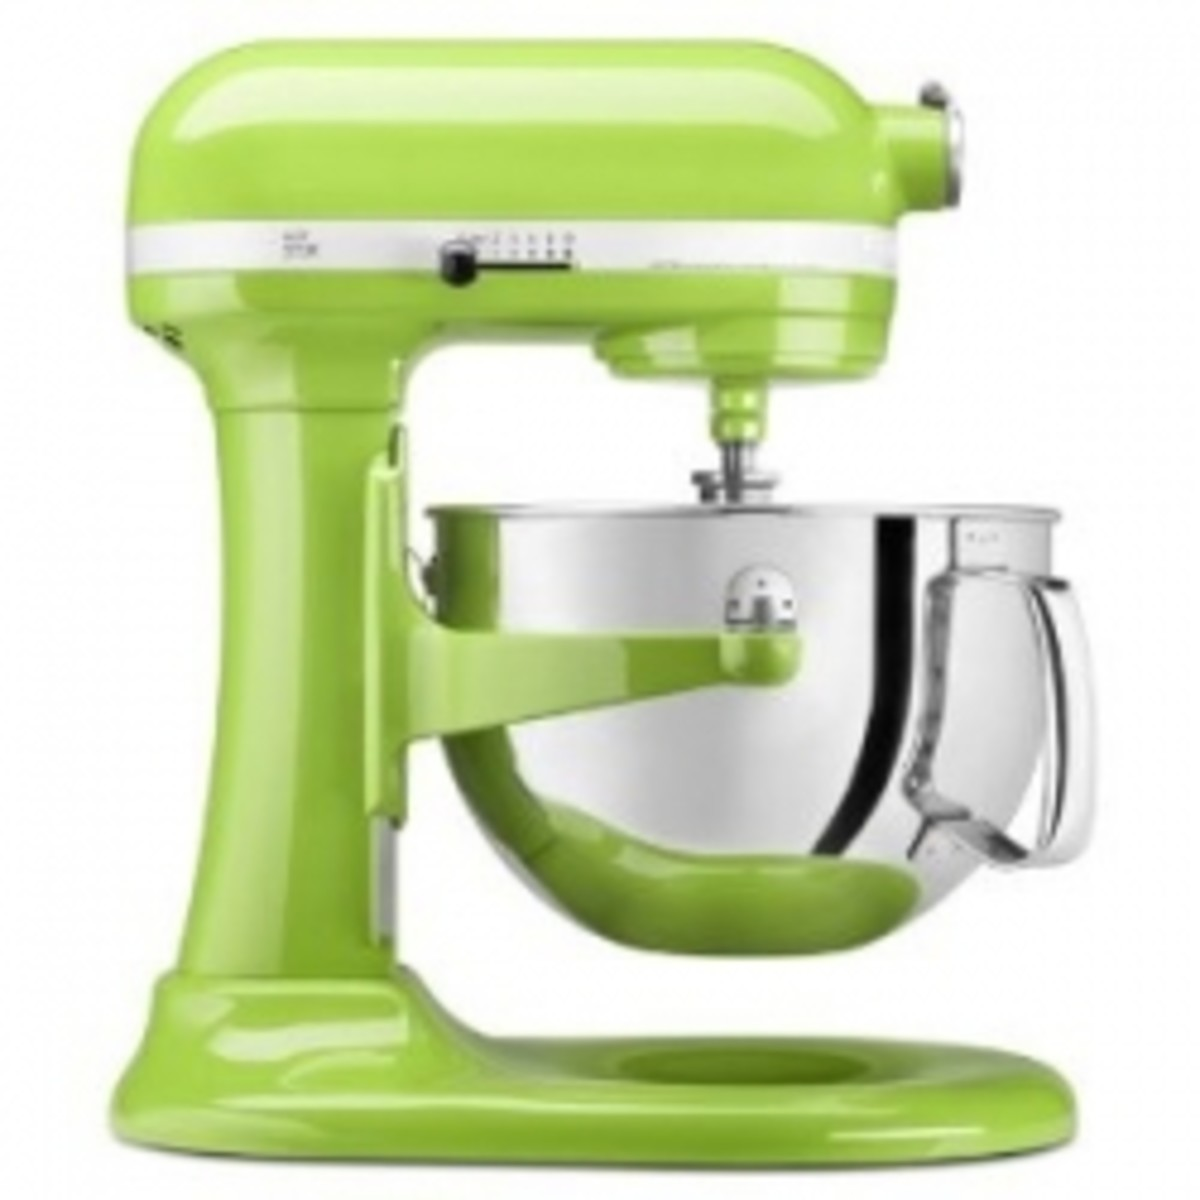 Colorful Small Kitchen Appliances: The Best and the Brightest